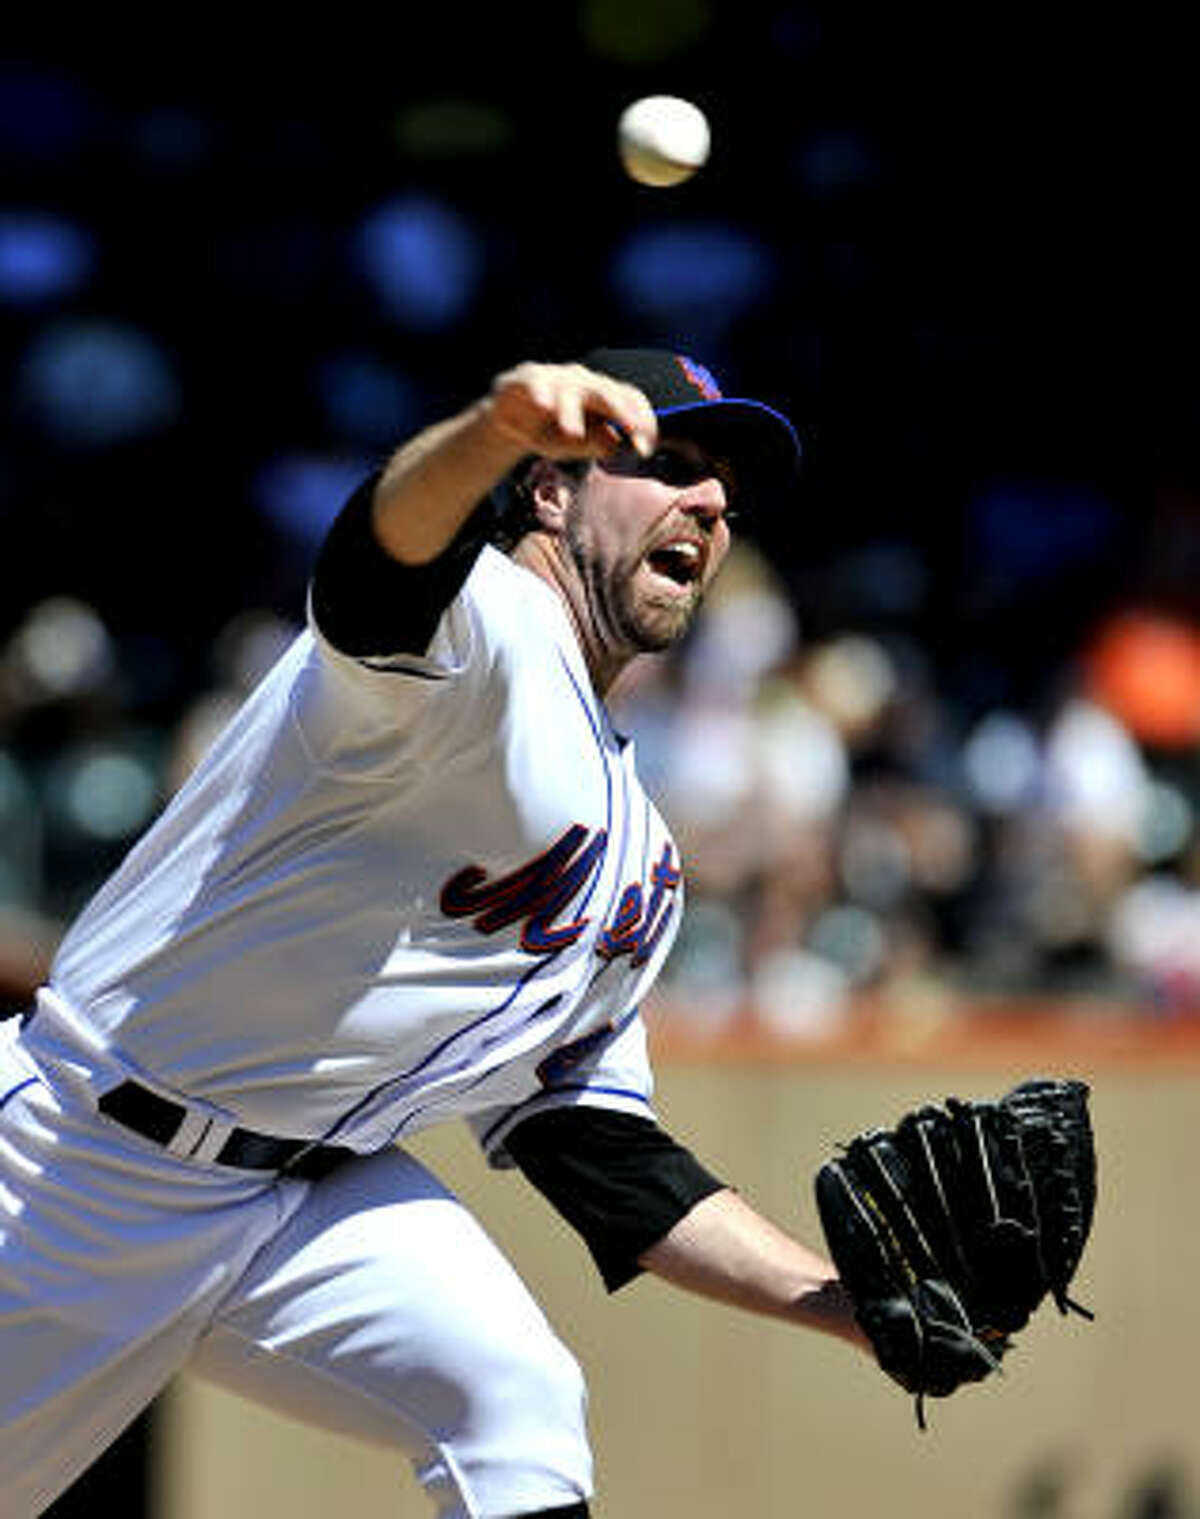 Mets starter R.A. Dickey held the Astros to one run in seven innings. The knuckleballer lowered his ERA to 2.56.